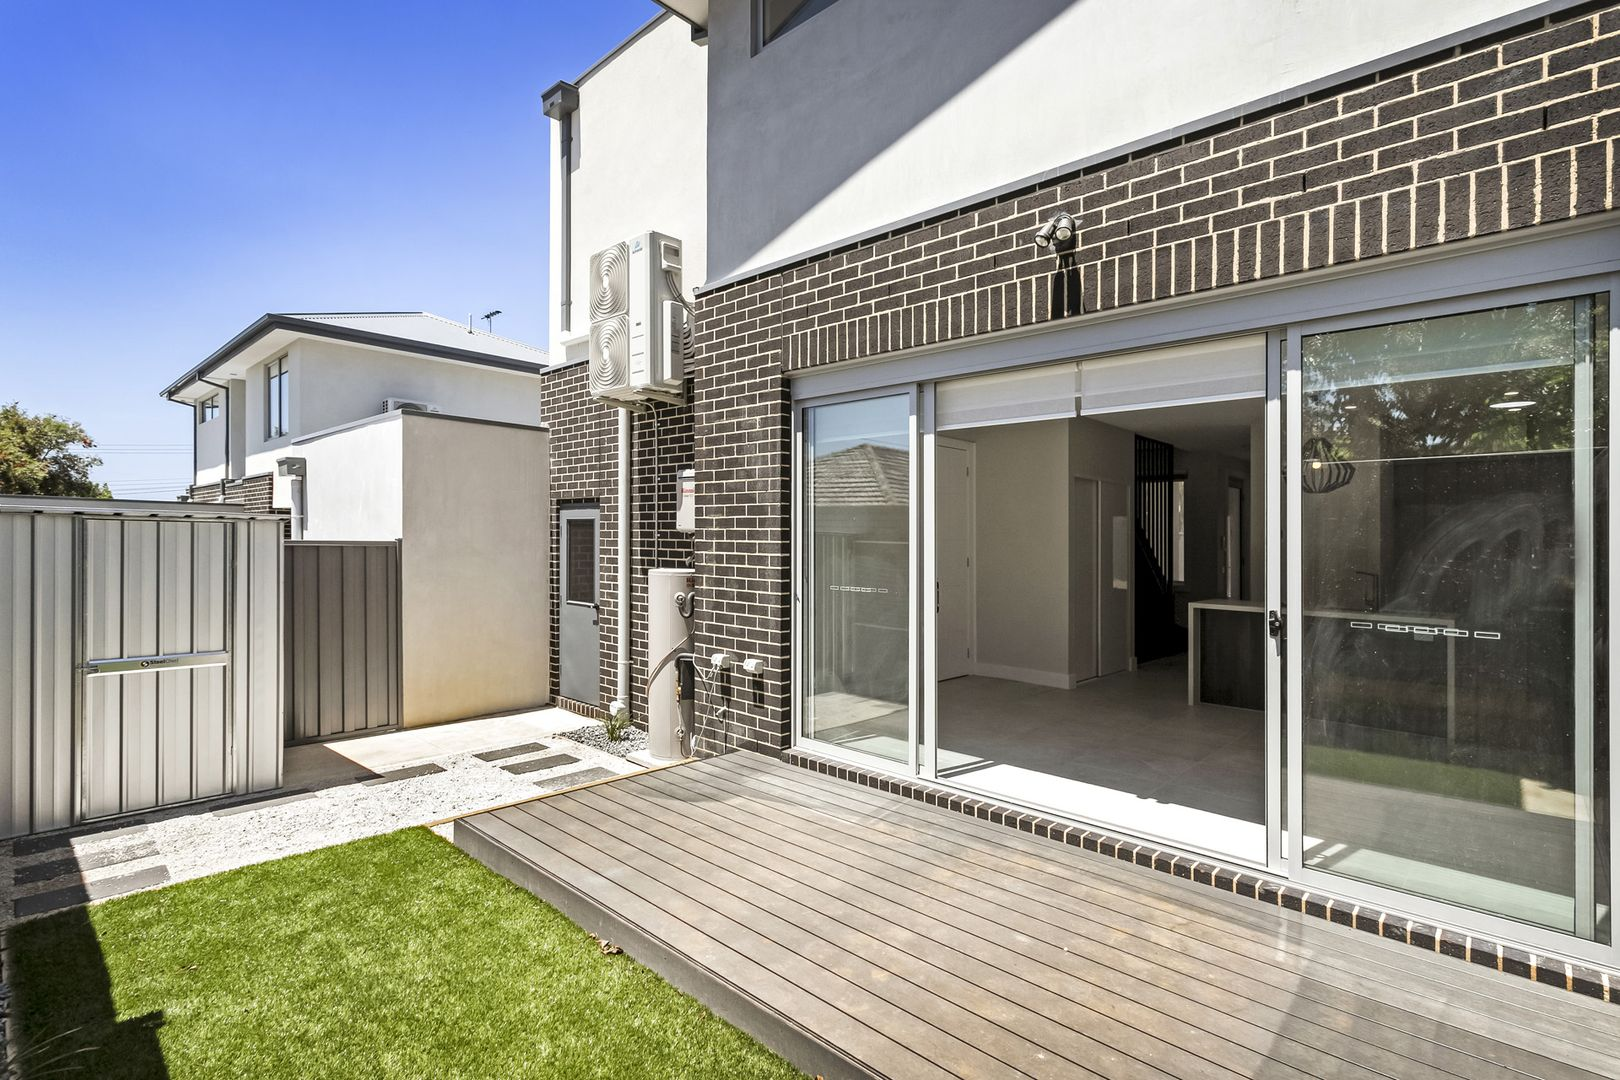 3/7 Garnet Street, Essendon West VIC 3040, Image 2